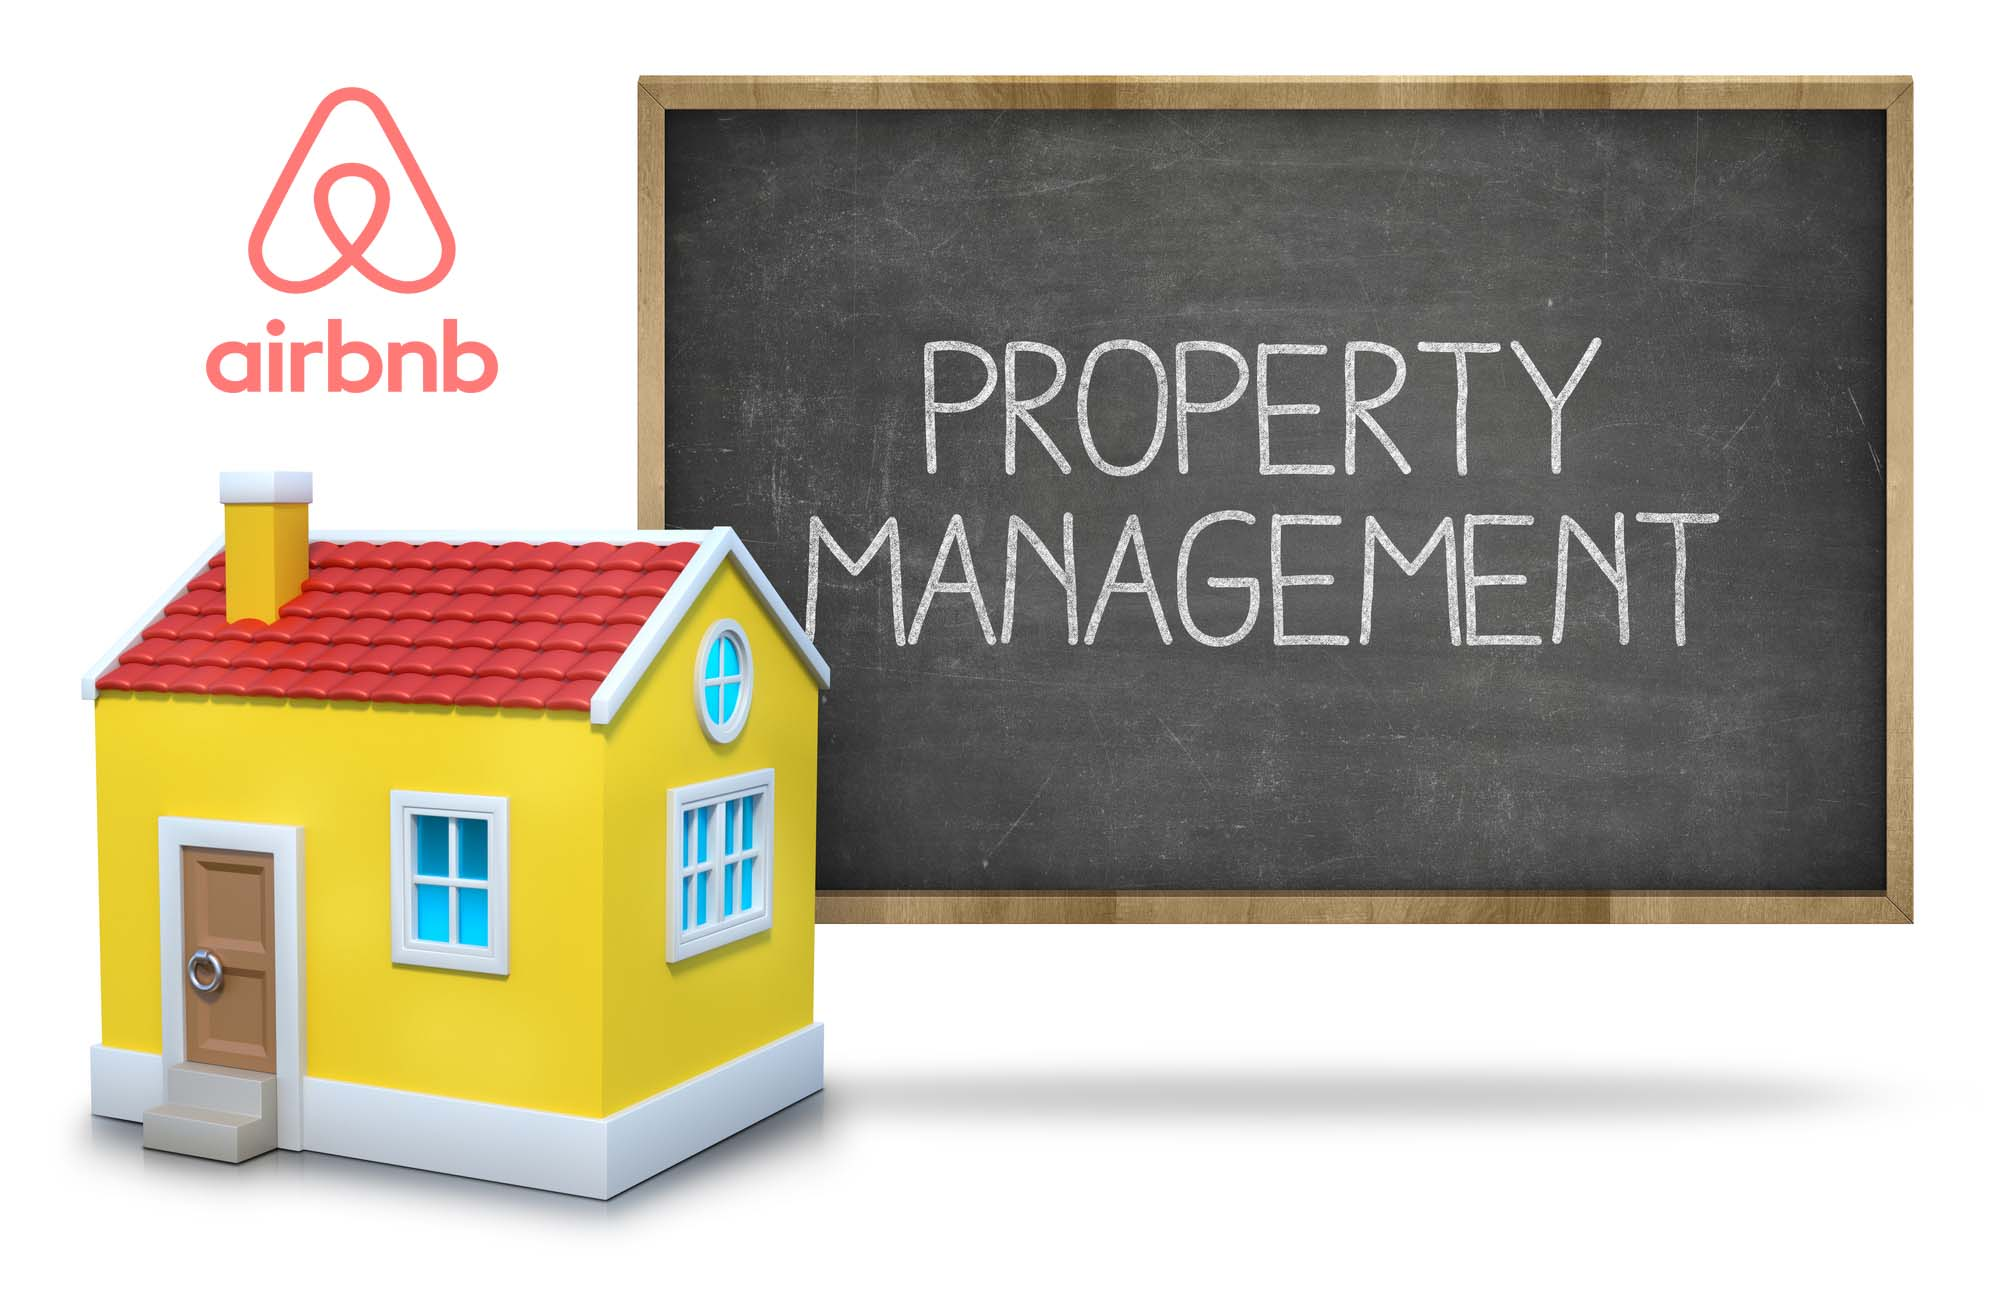 Airbnb property management companies